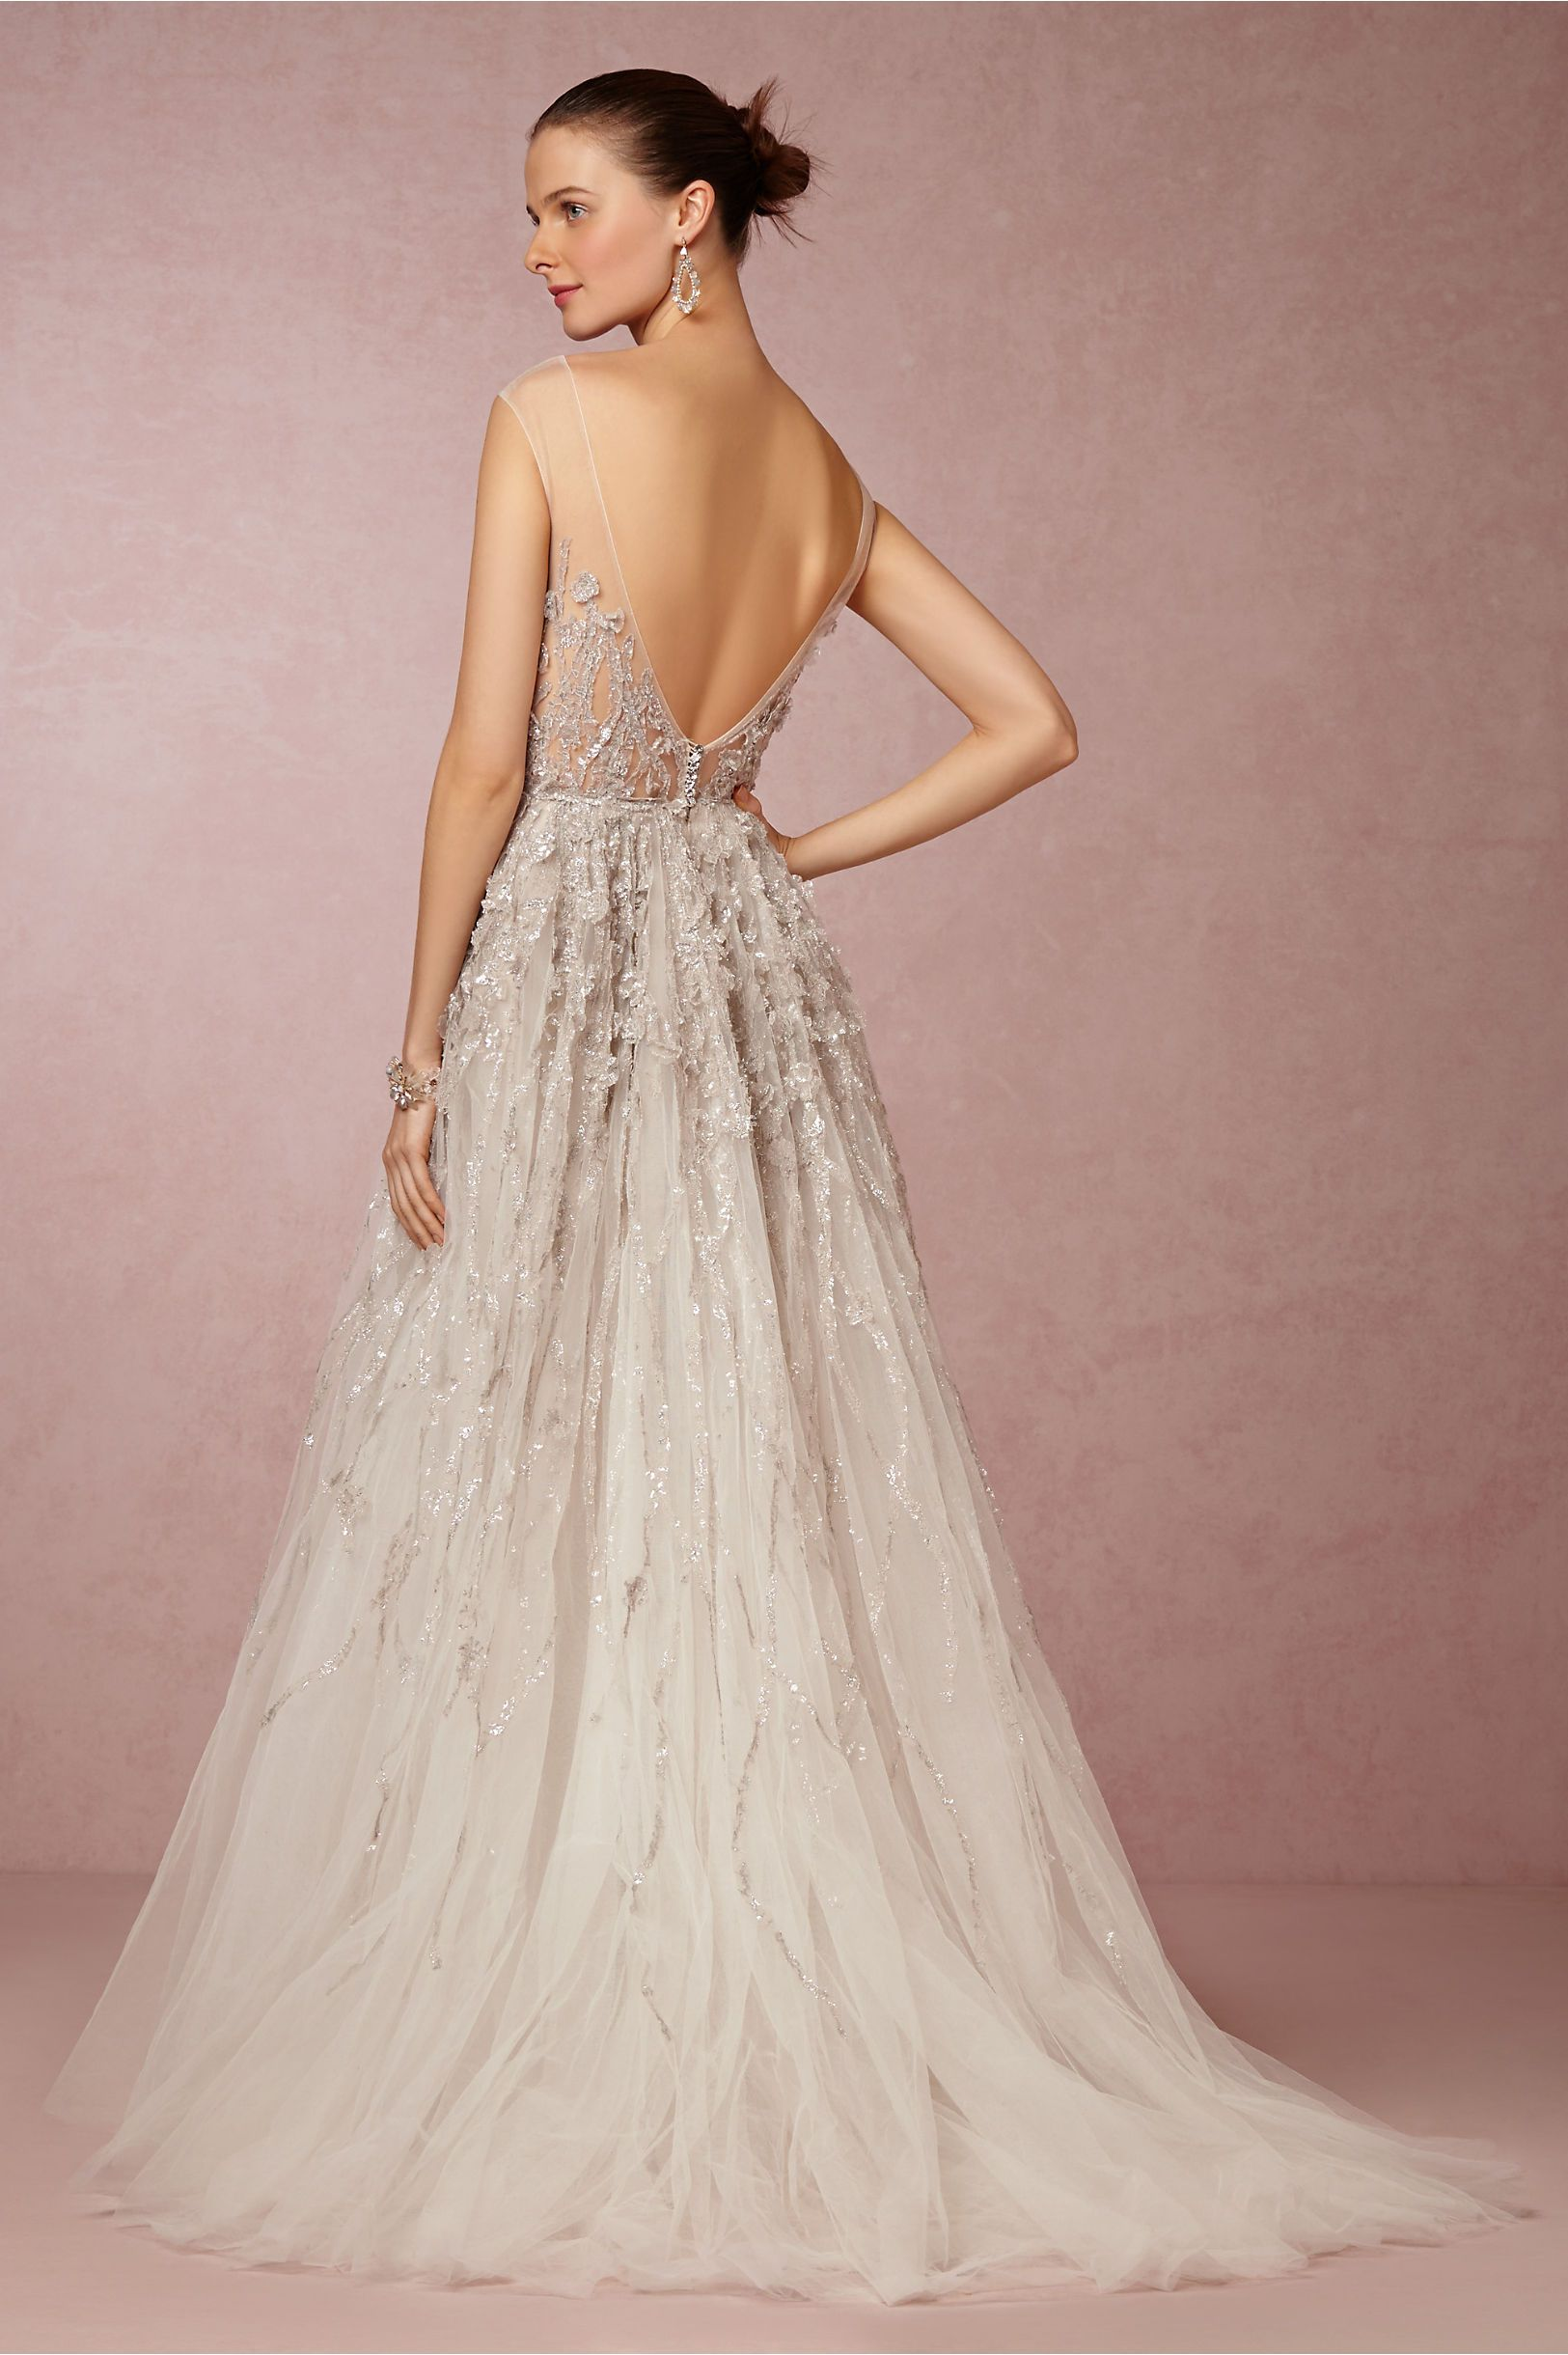 Wisteria gown in bride wedding dresses at bhldn the for Anthropologie beholden wedding dress